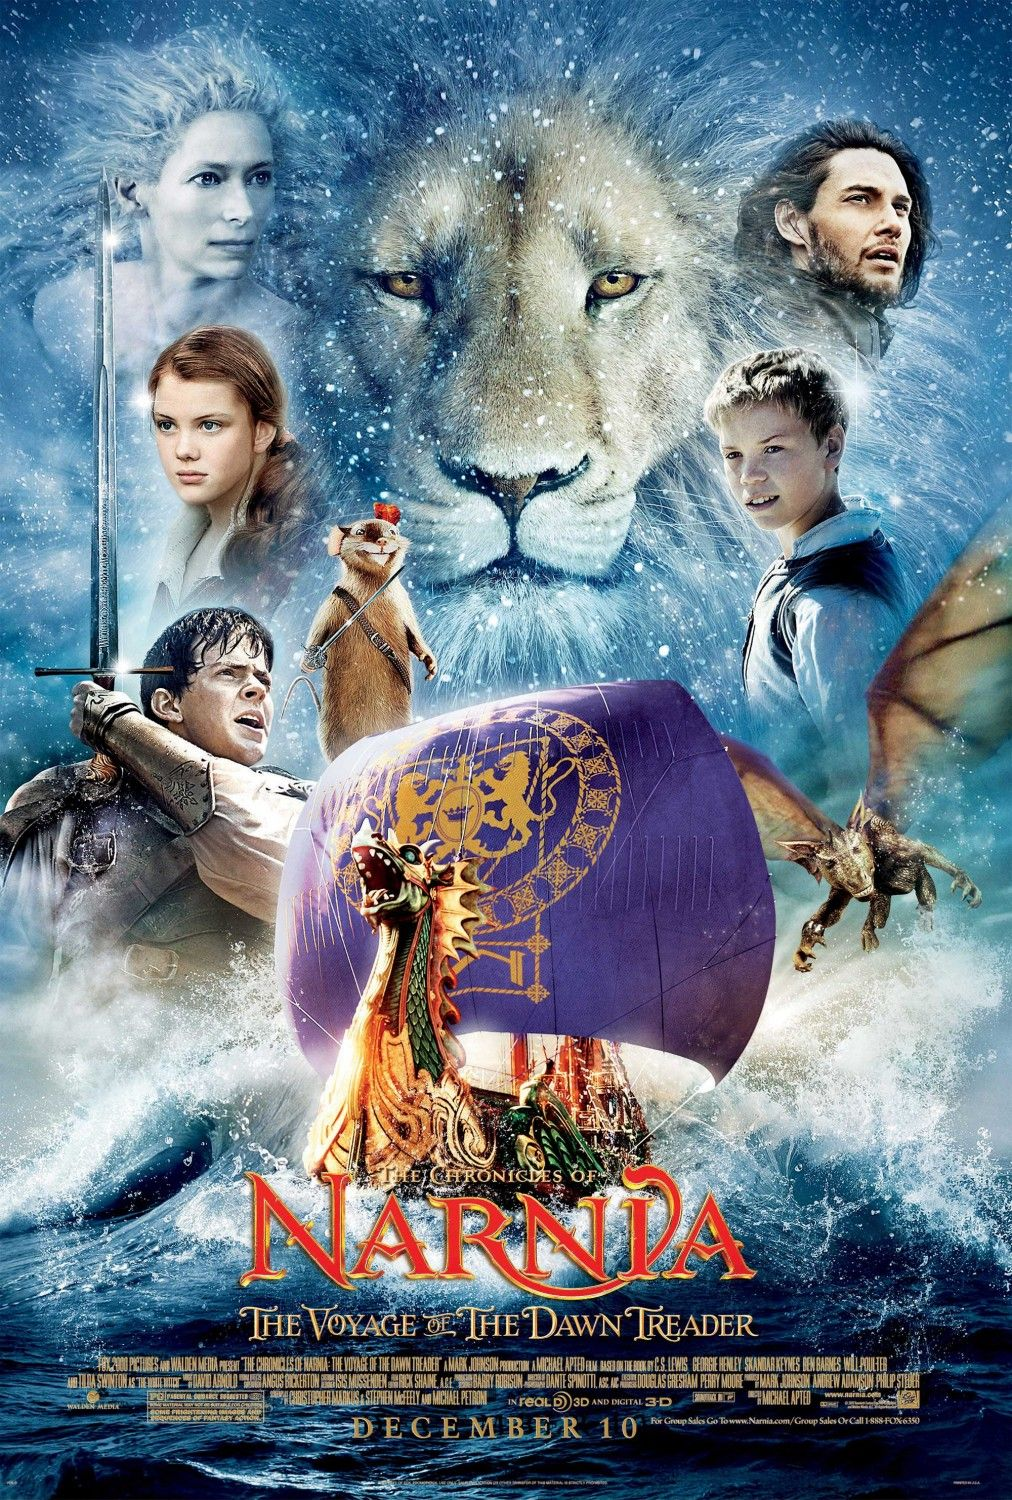 The Chronicles of Narnia: The Voyage of the Dawn Treader 2010 - Full (HD)